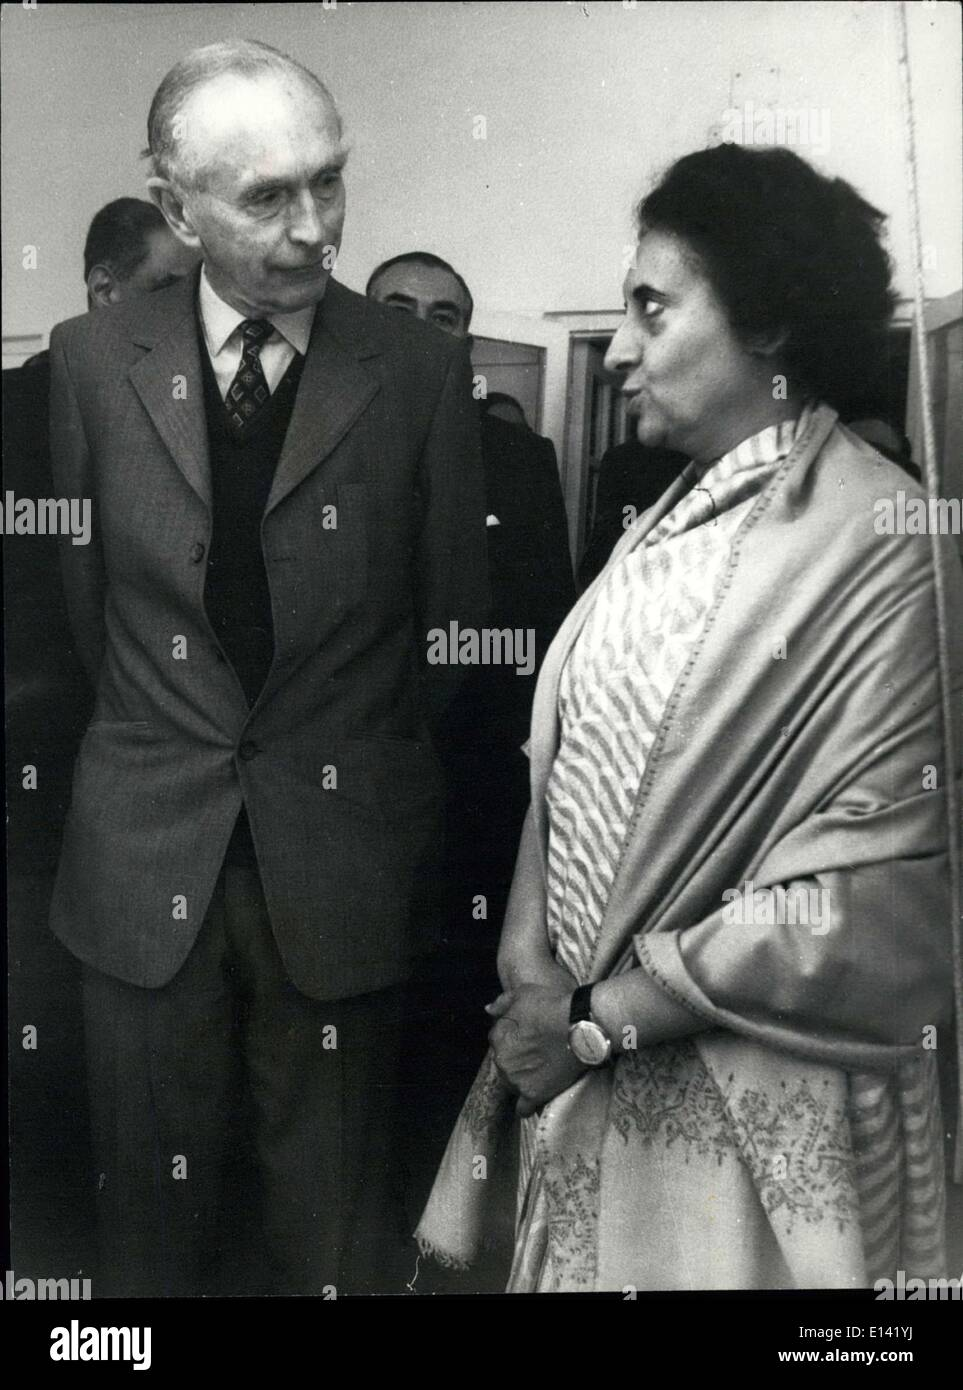 Mar. 31, 2012 - Sir Alec Douglas-Home, U.K. Setary of State for Foreign and Commonwealth Affairs with Prime Minister Mrs. Ind - Stock Image